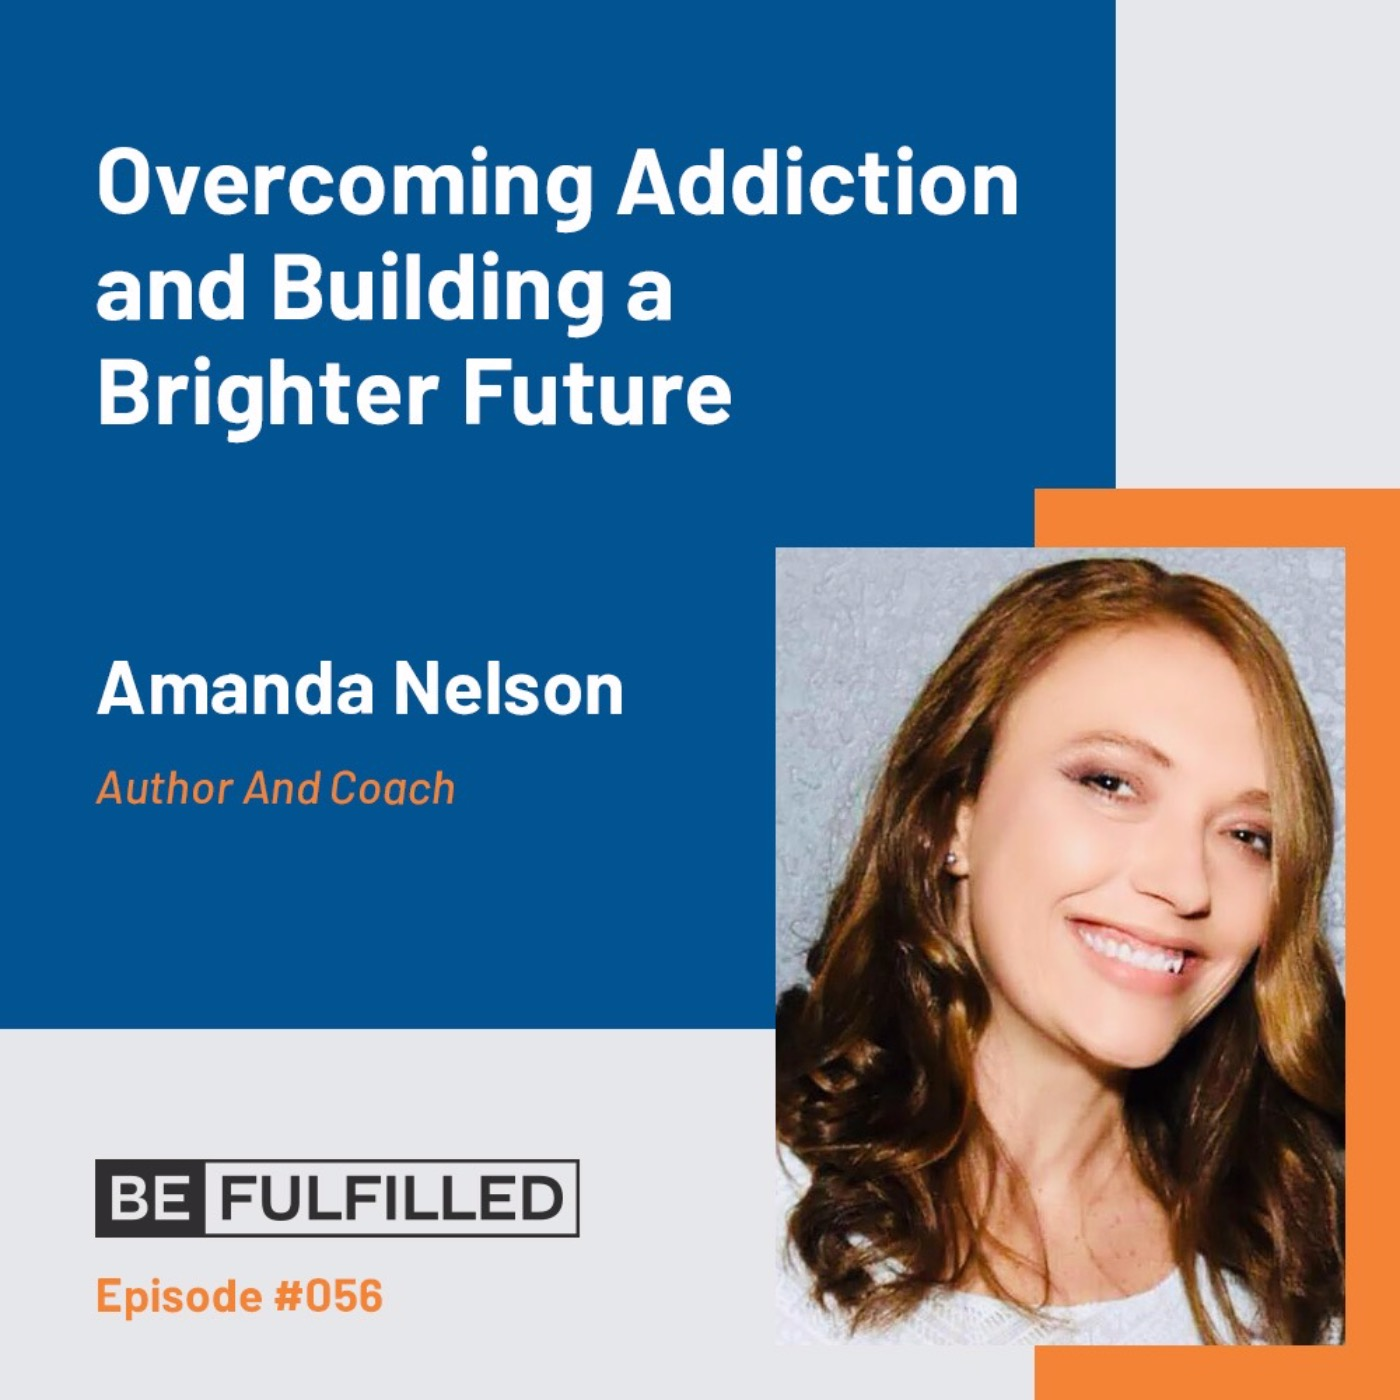 Overcoming Addiction and Building a Brighter Future - Amanda Nelson